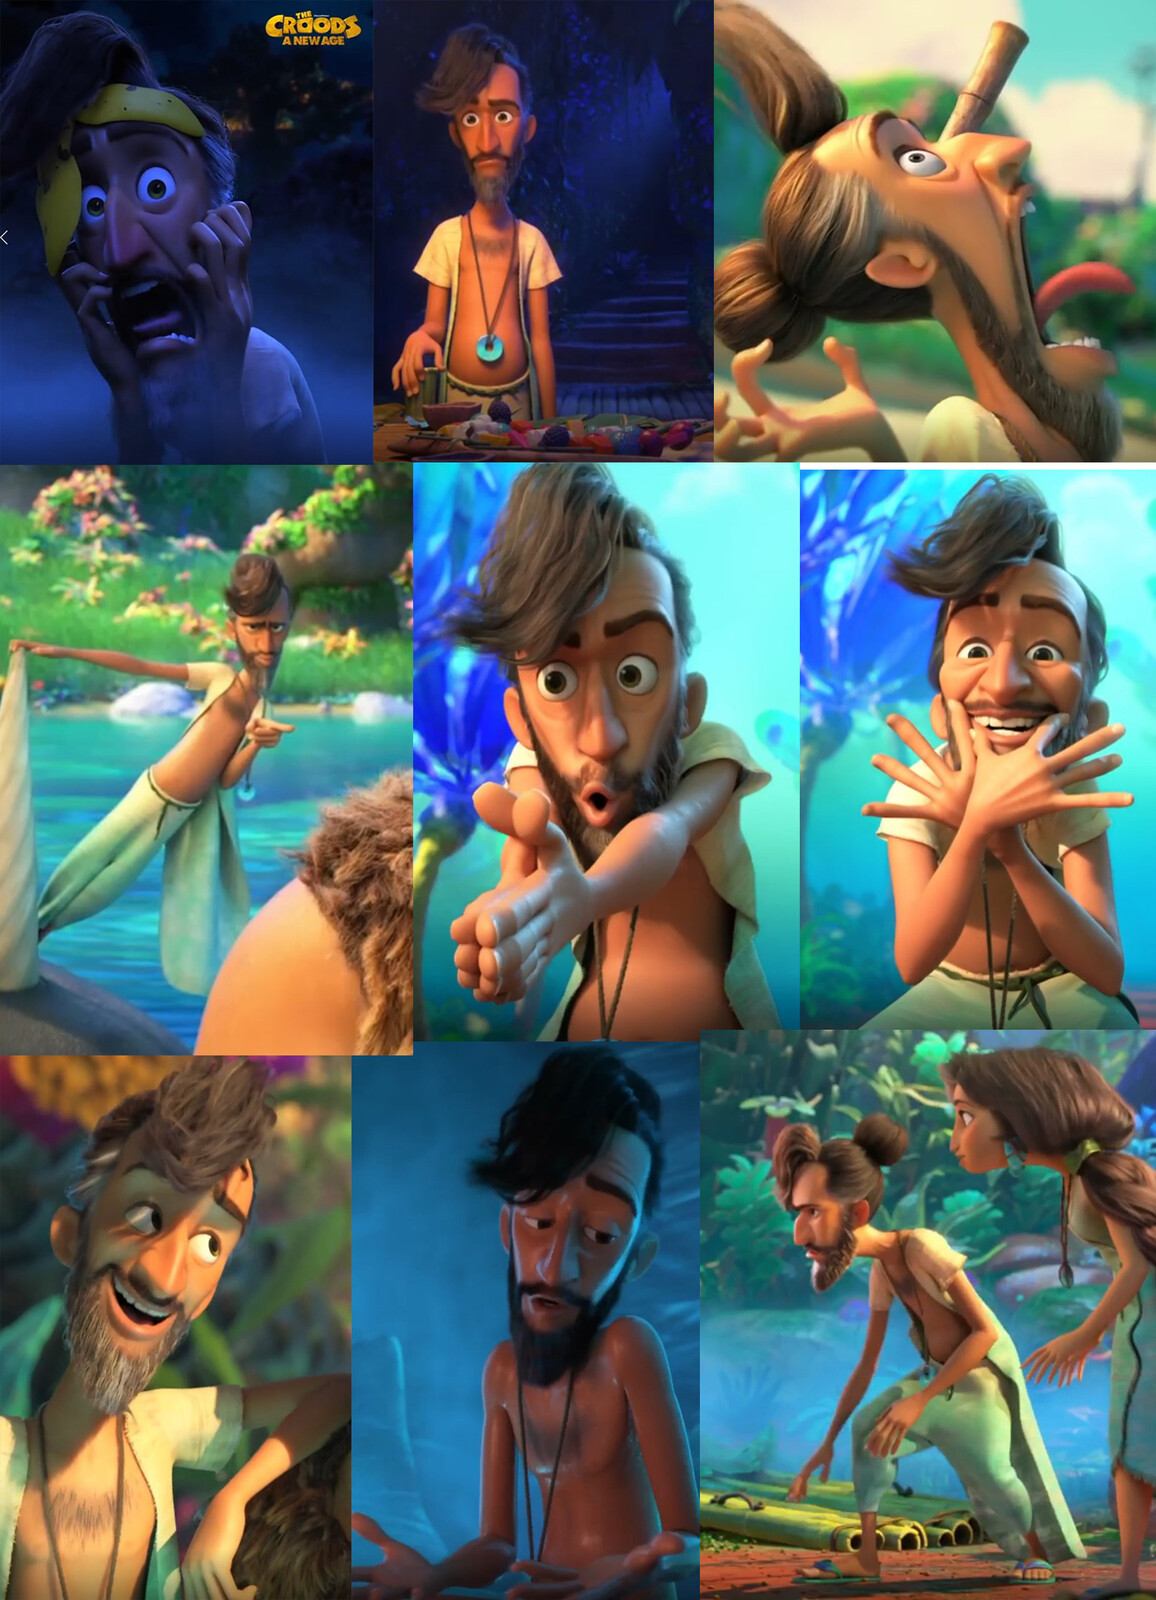 I worked on the model. all other aspects were done by the amazing Croods new age team at Dreamworks Animation.